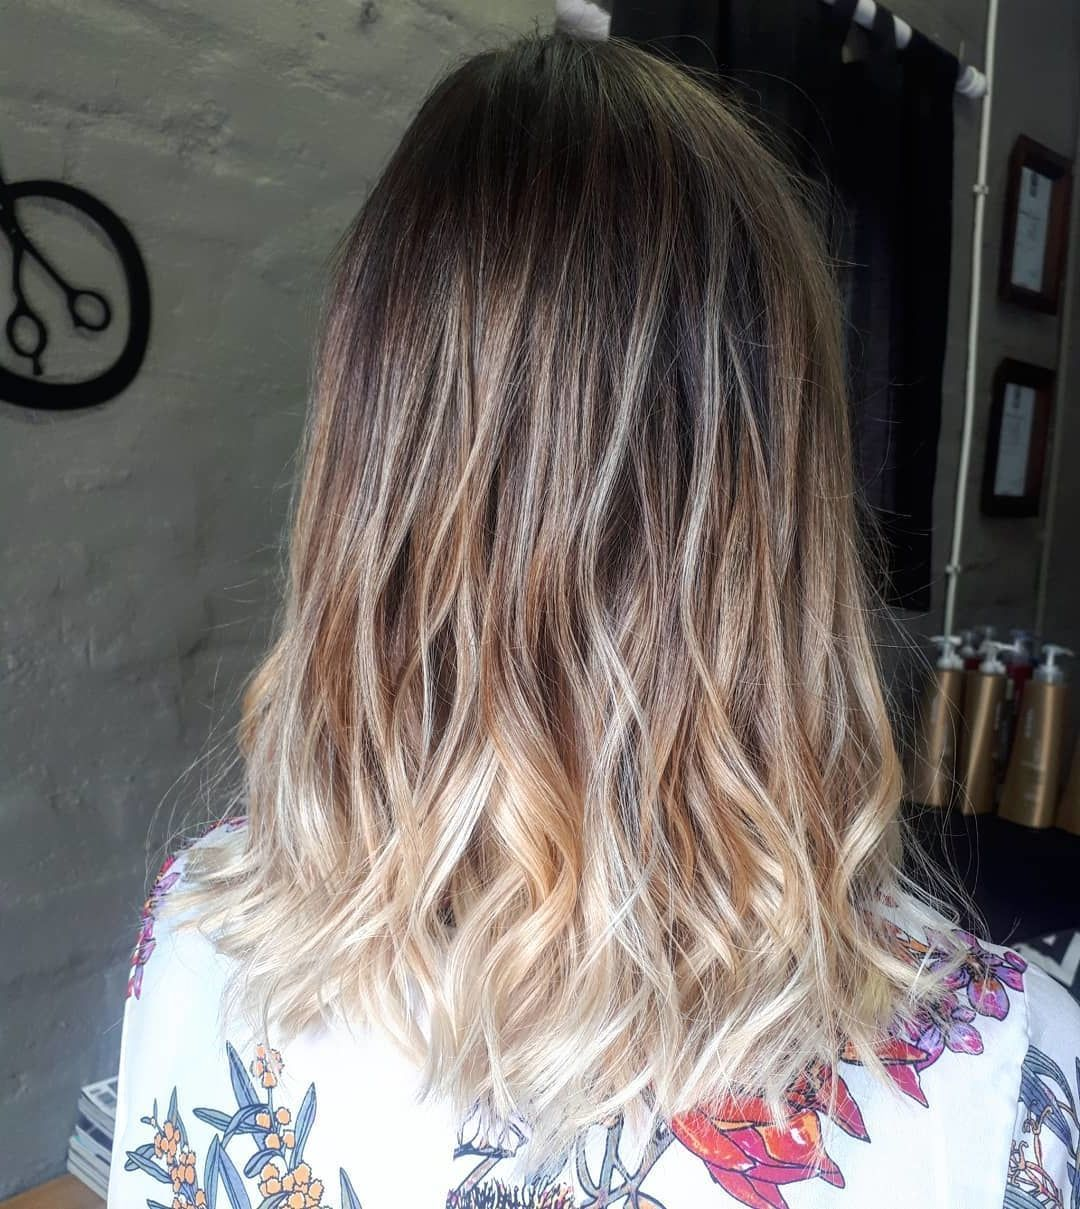 25 Ash Blonde Balayage Hair Color Ideas #lightashblonde 25 Ash Blonde Balayage Hair Color Ideas, Looking for ash blonde balayage hair color ideas? Then, hair color of your own should be darker than typical blonde. Light ash blonde balayage may tru..., Balayage #lightashblonde